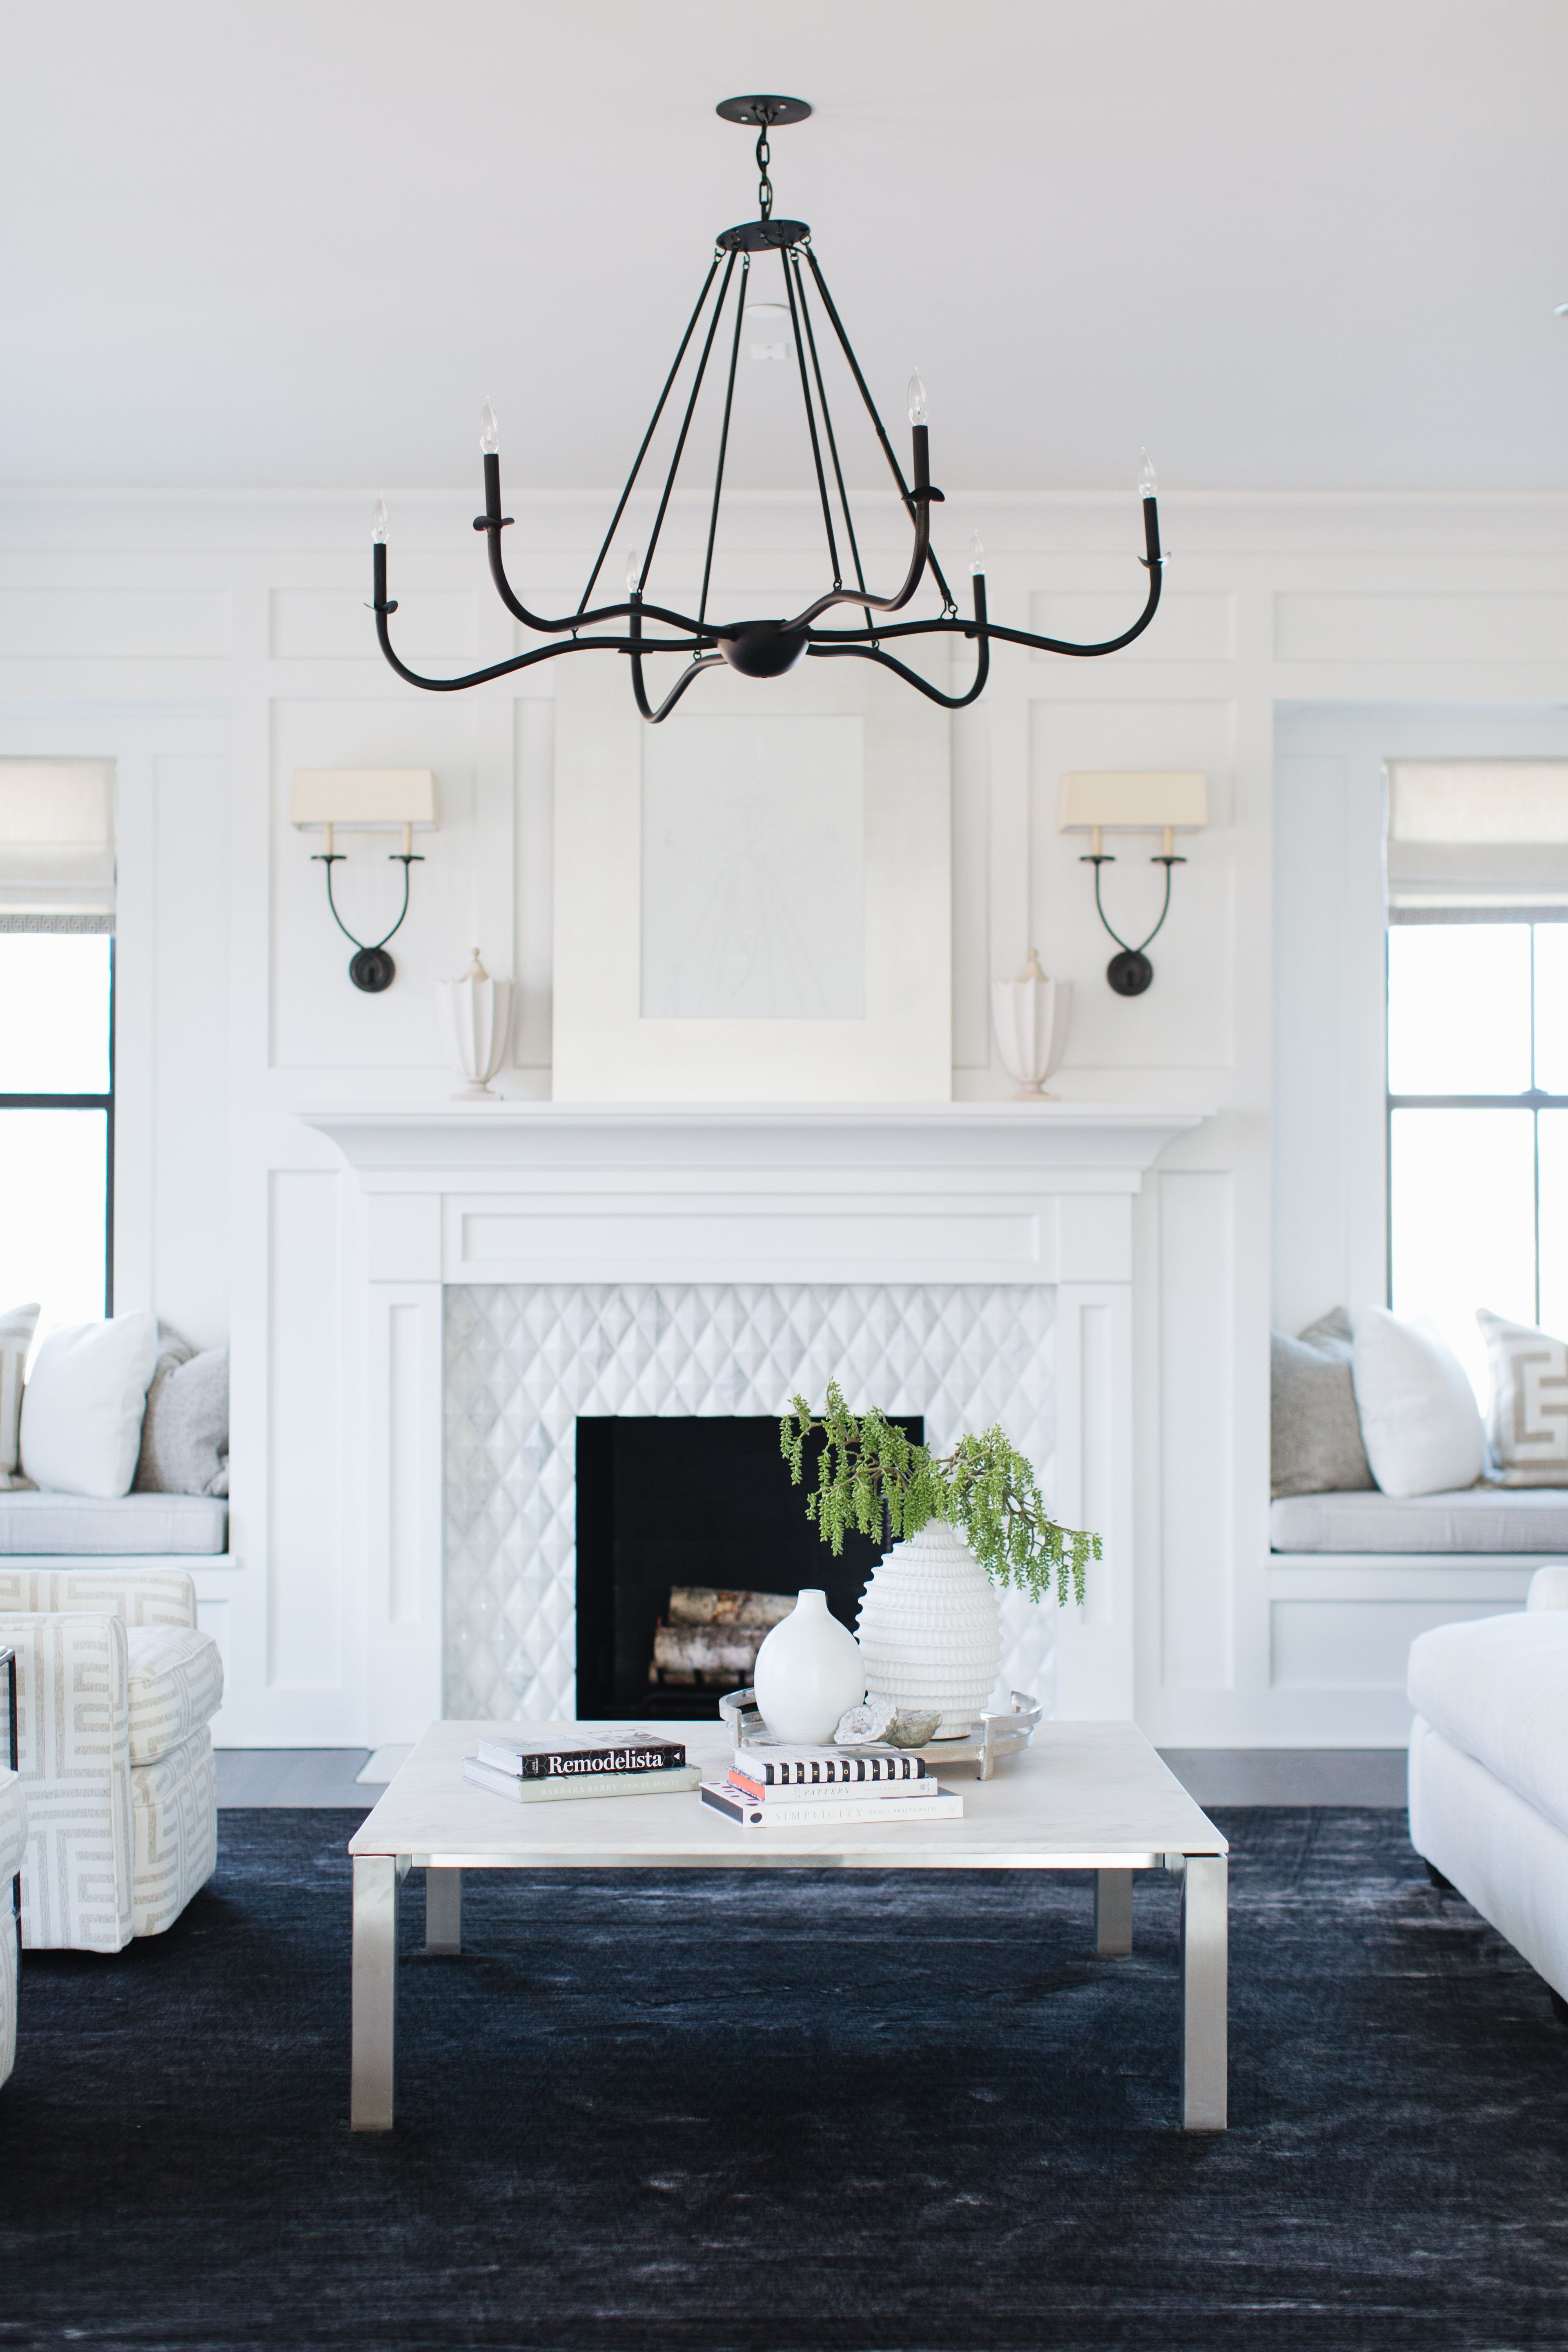 Classic Fireplace Mantel In White #Fireplace #Fireplacedesign #Fireplaceidea #Fireplacedecor #Fireplacemantel